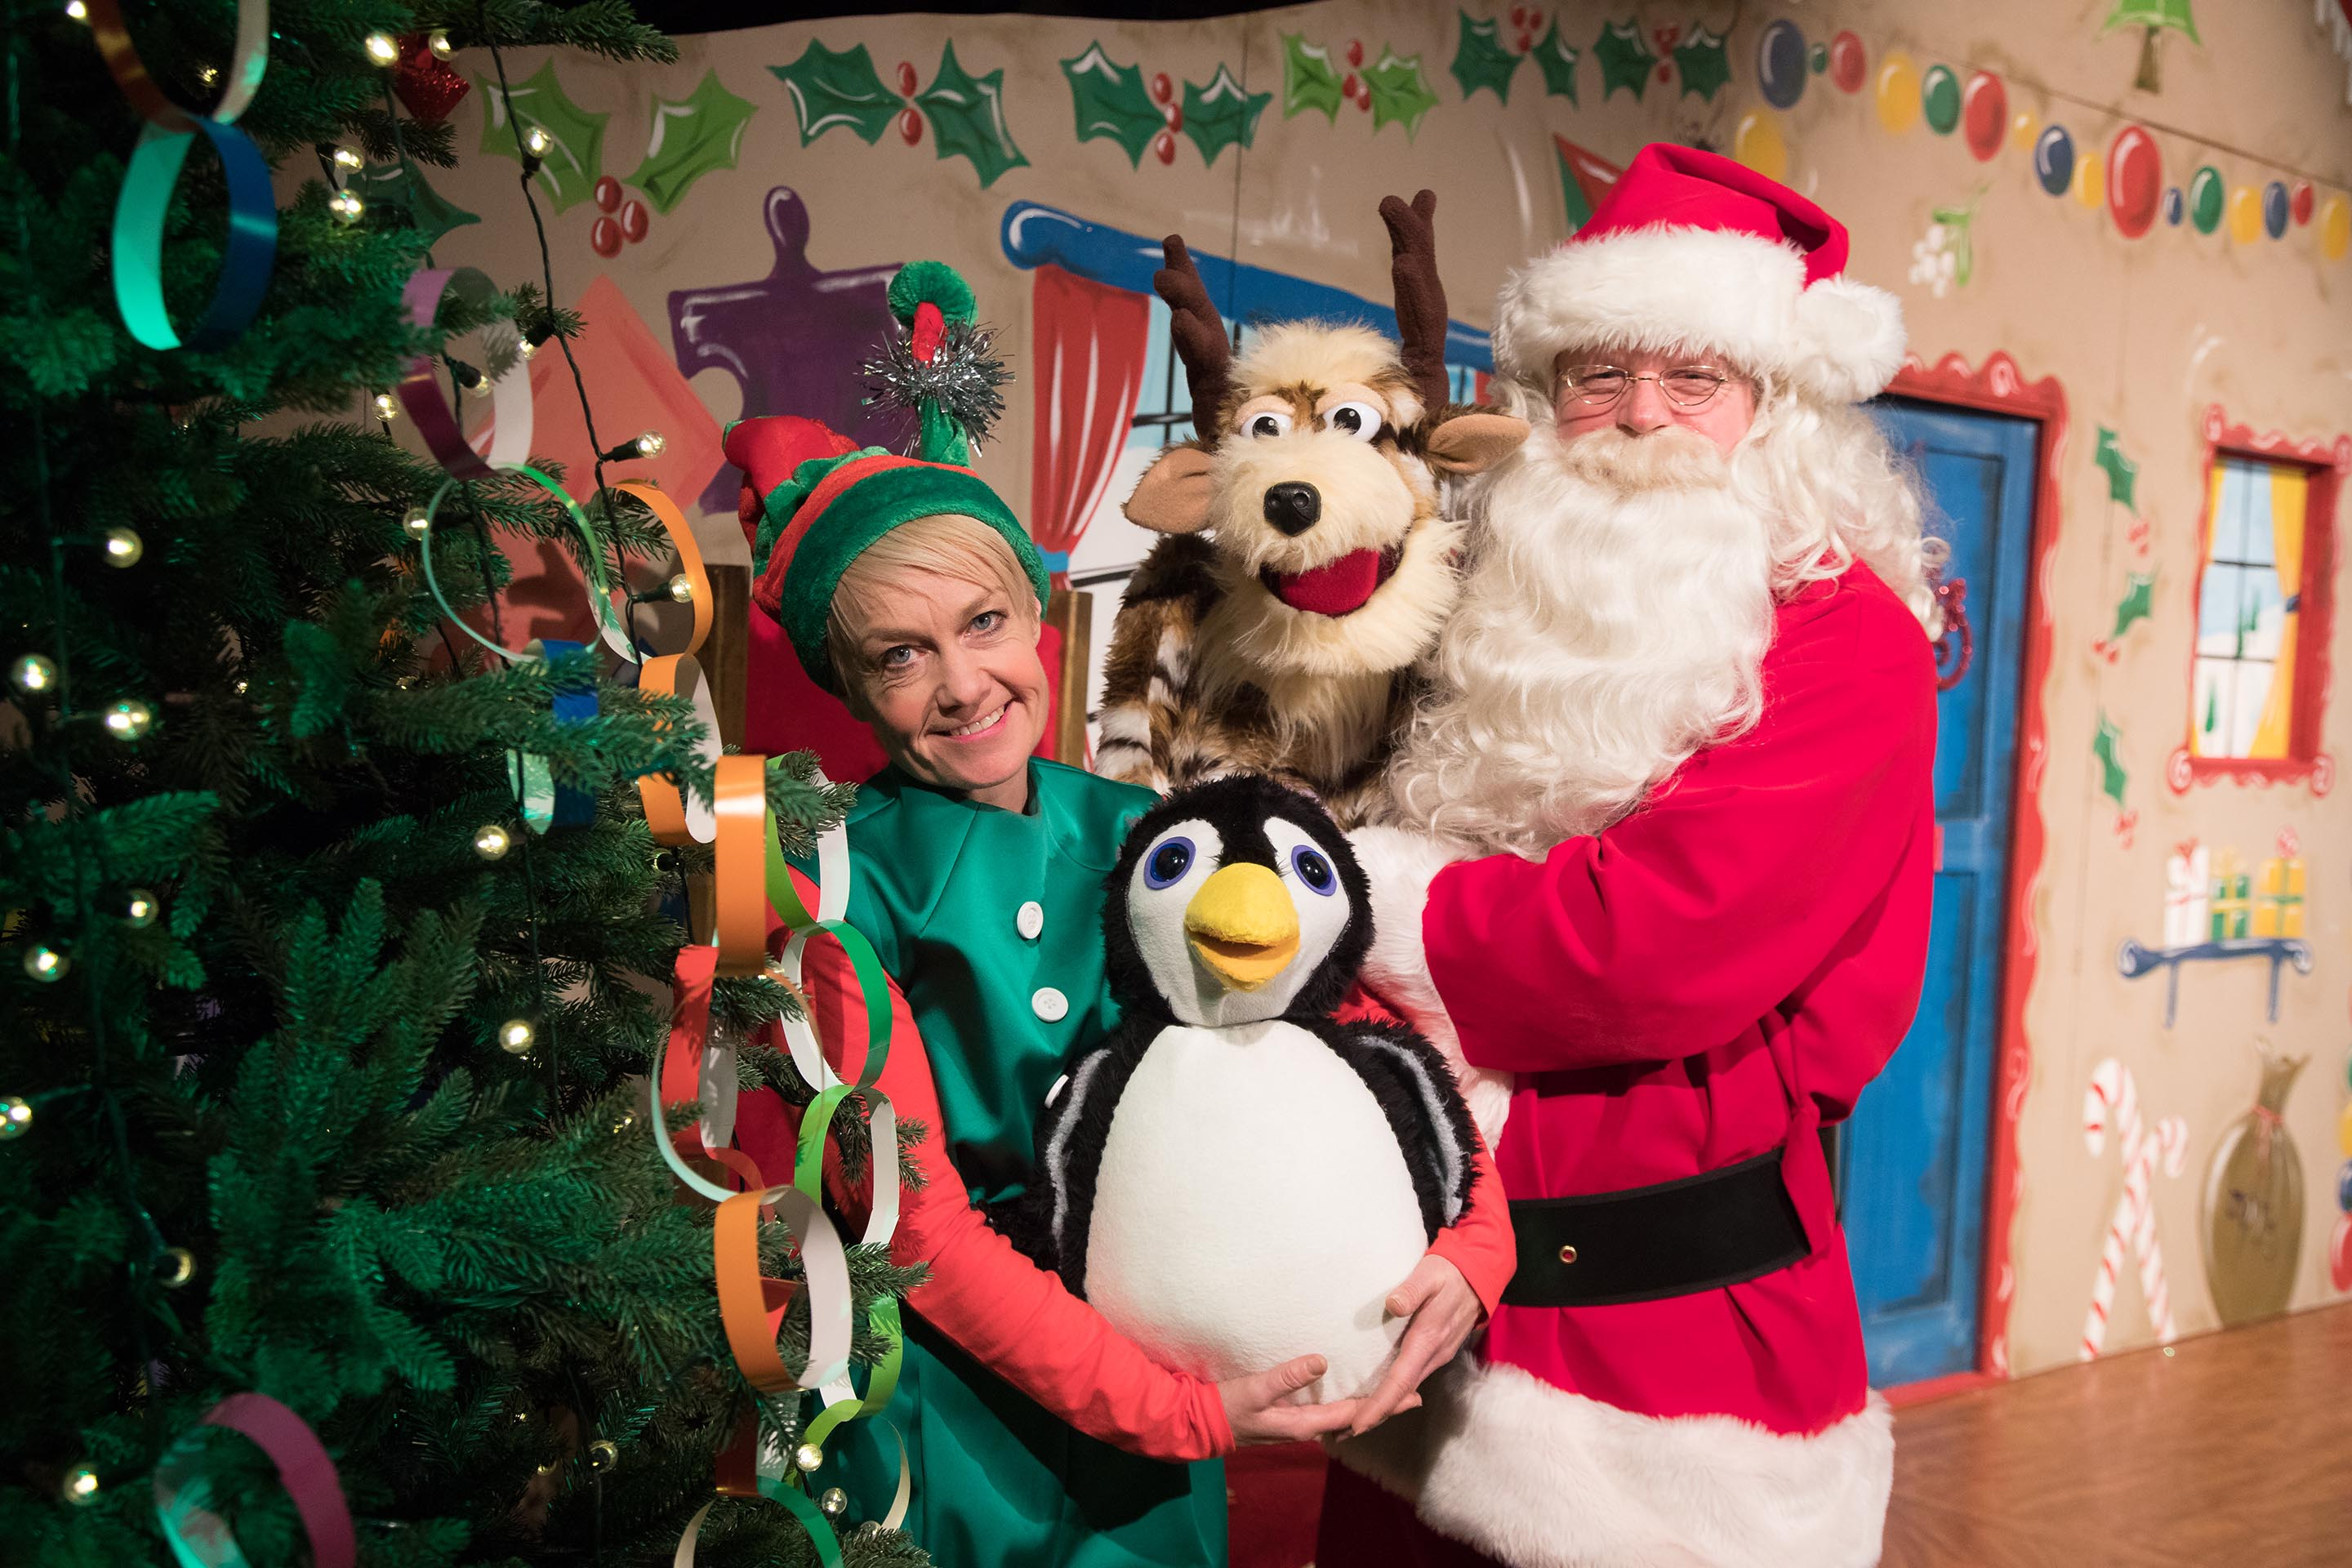 The Santa Shows - Dotty the Elf, Pompom the Penguin, Dasher the Reindeer and Father Christmas